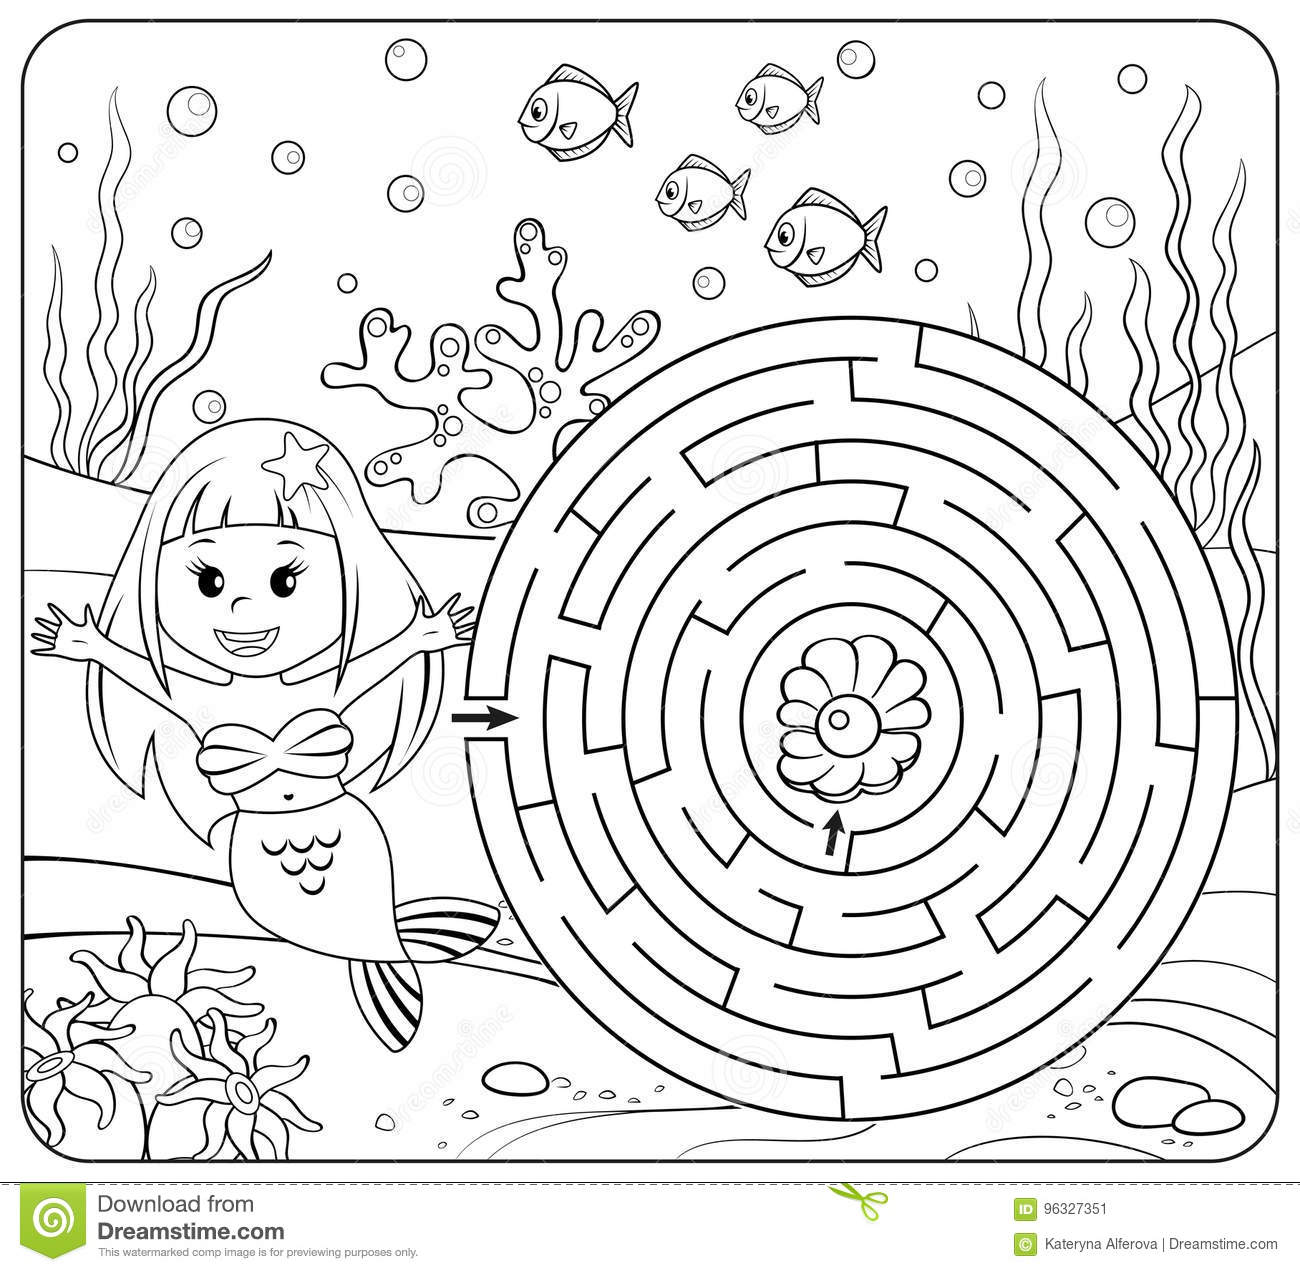 Help Mermaid Find Path To Pearl Labyrinth Maze Game For